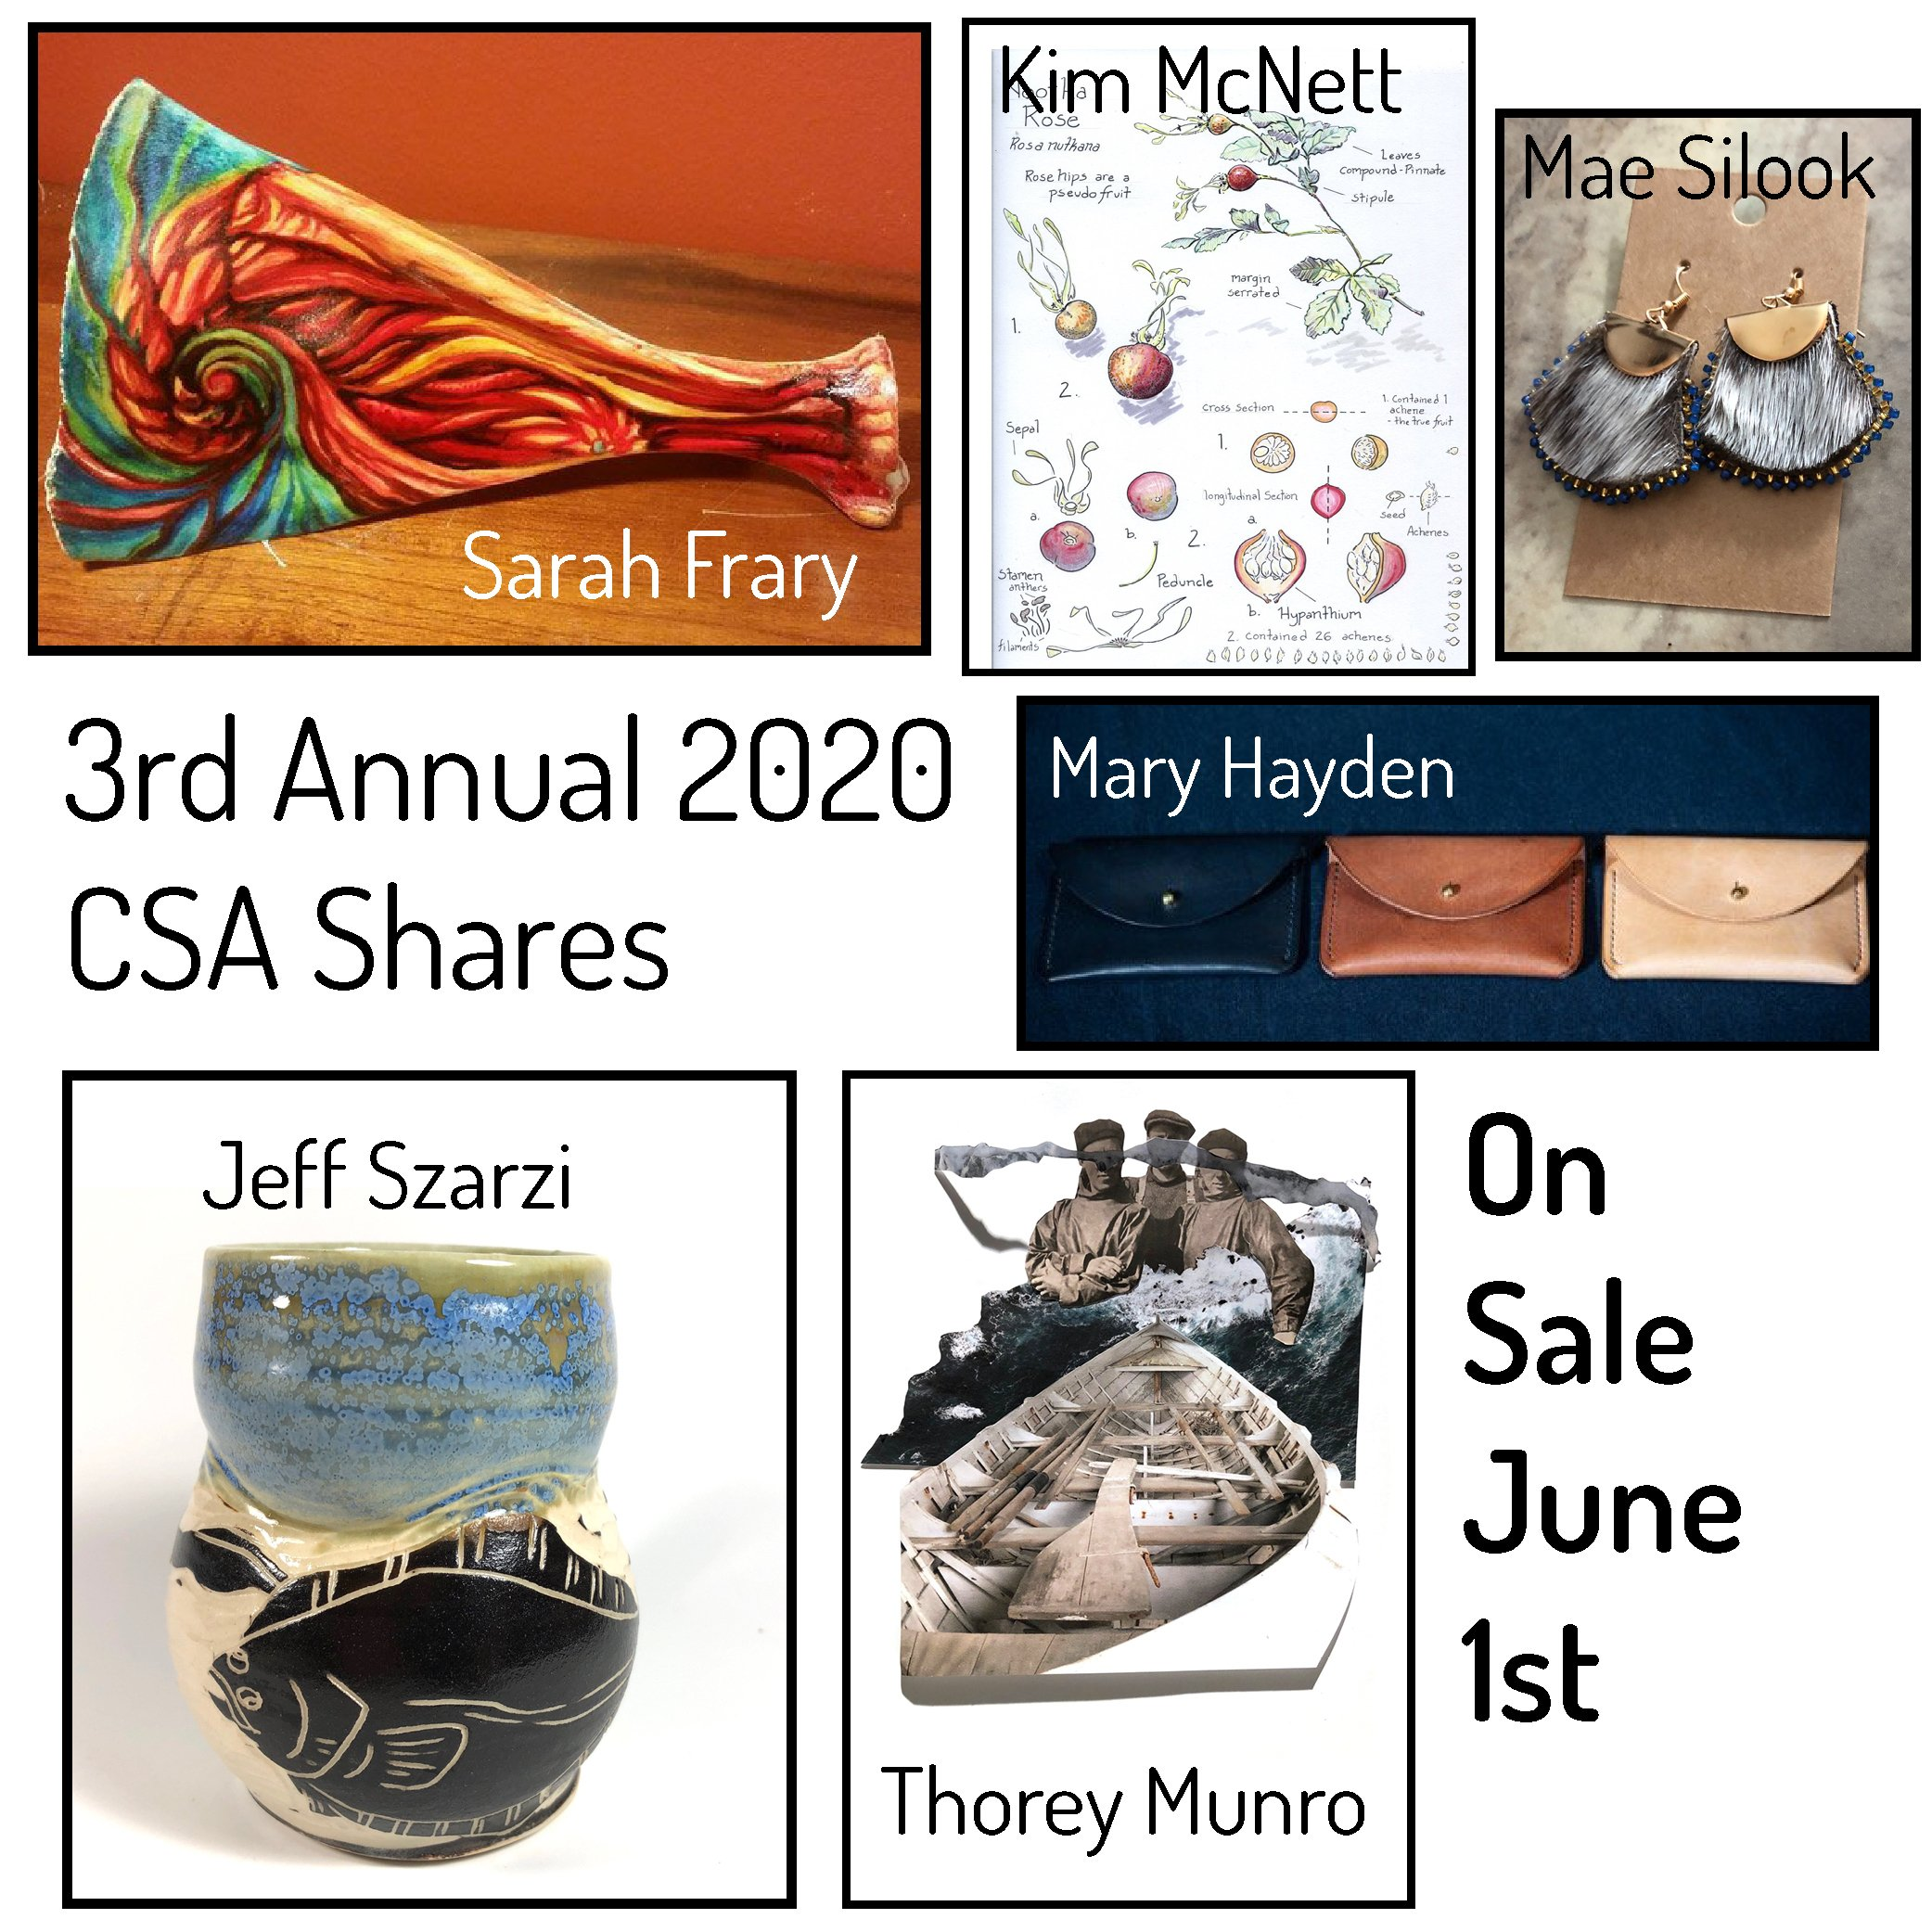 3rd Annual CSA Shares On Sale June 1st!